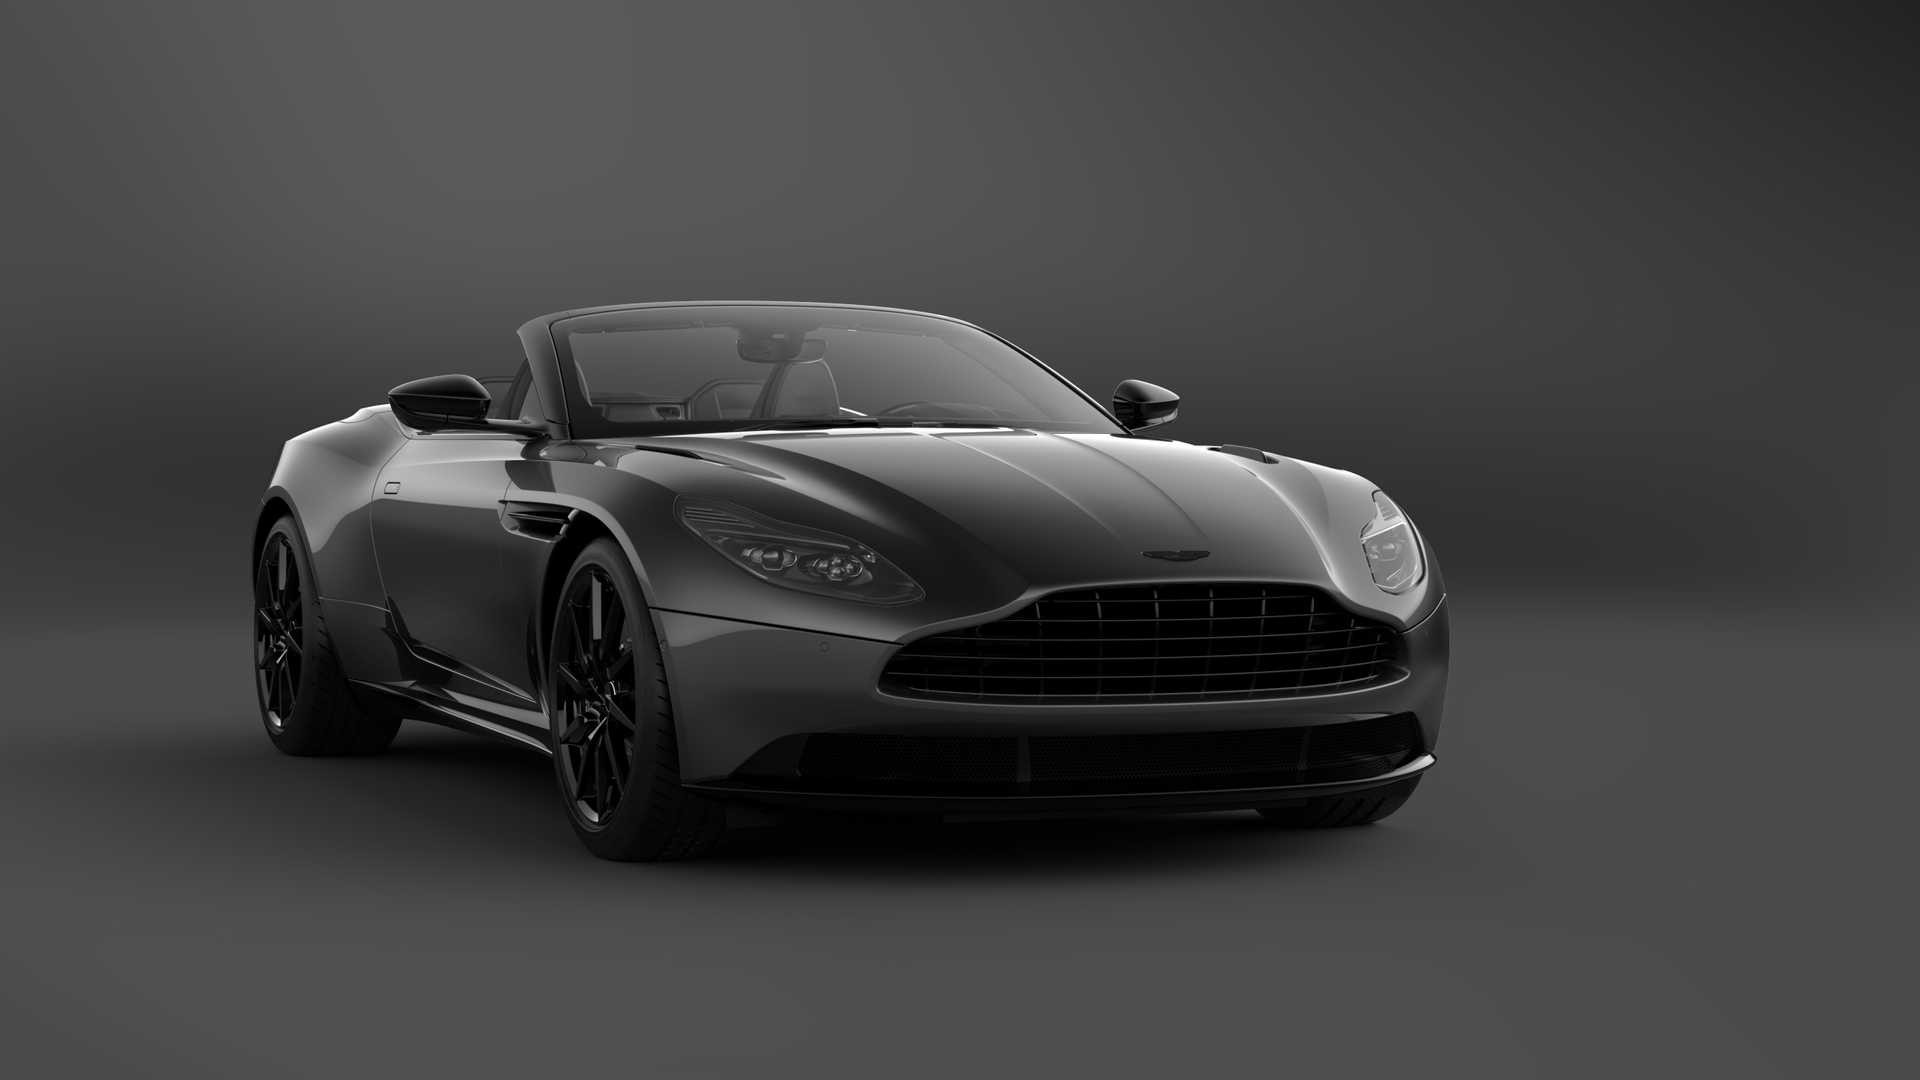 2021-aston-martin-db11-v8-shadow-edition-4.jpg